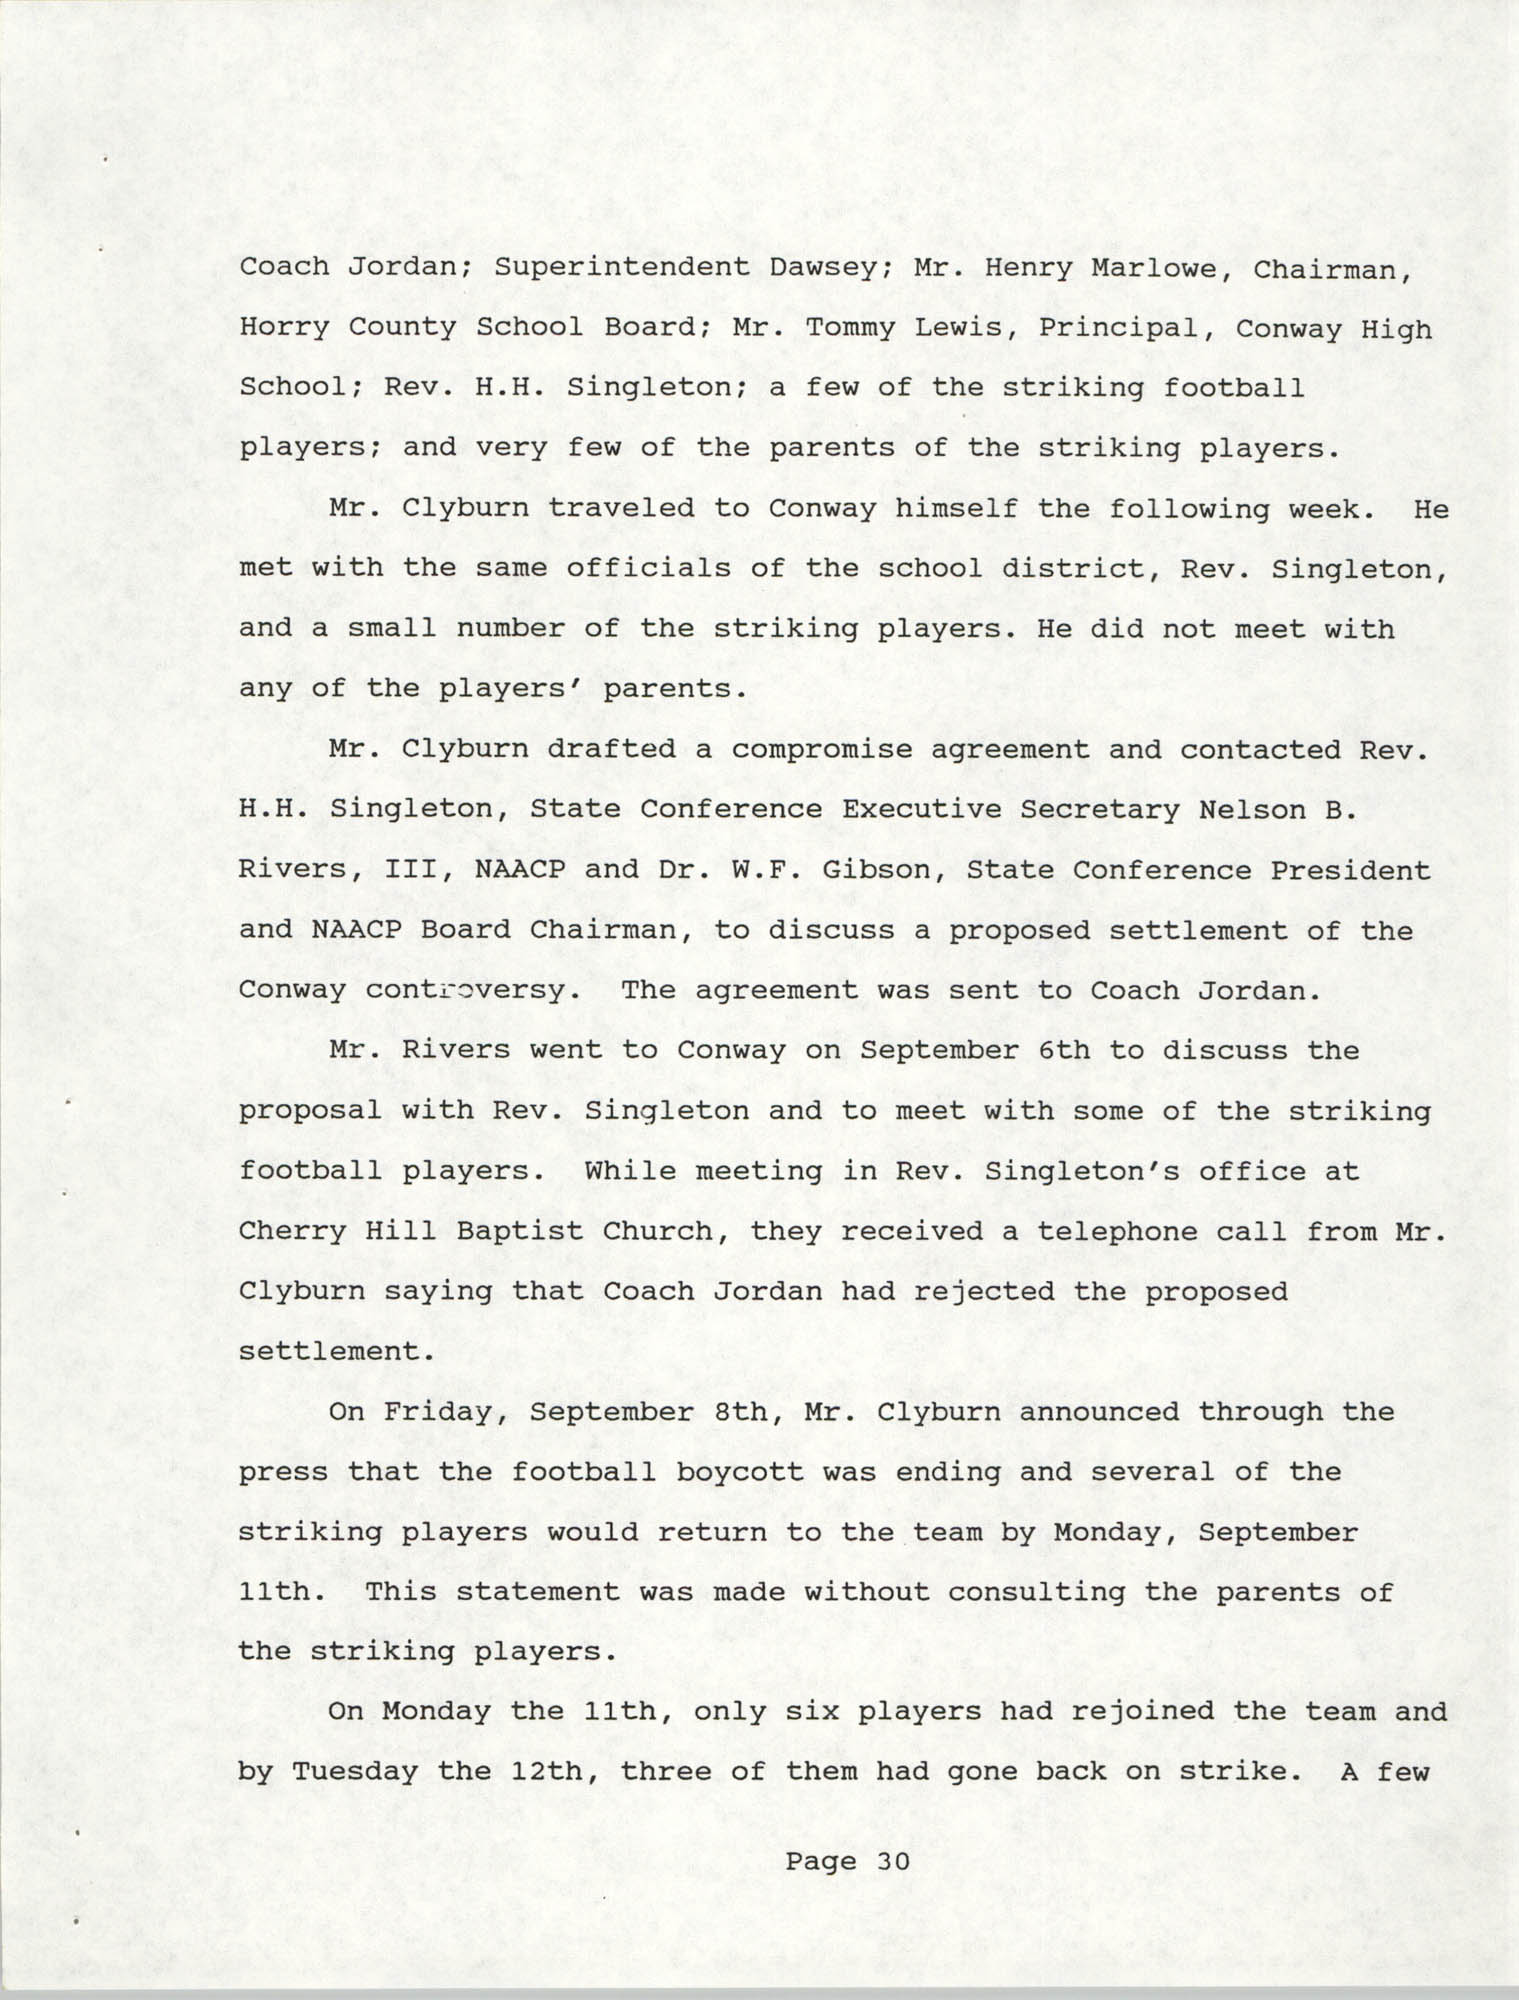 South Carolina Conference of Branches of the NAACP, 1990 Annual Report, Part Two, Page 30